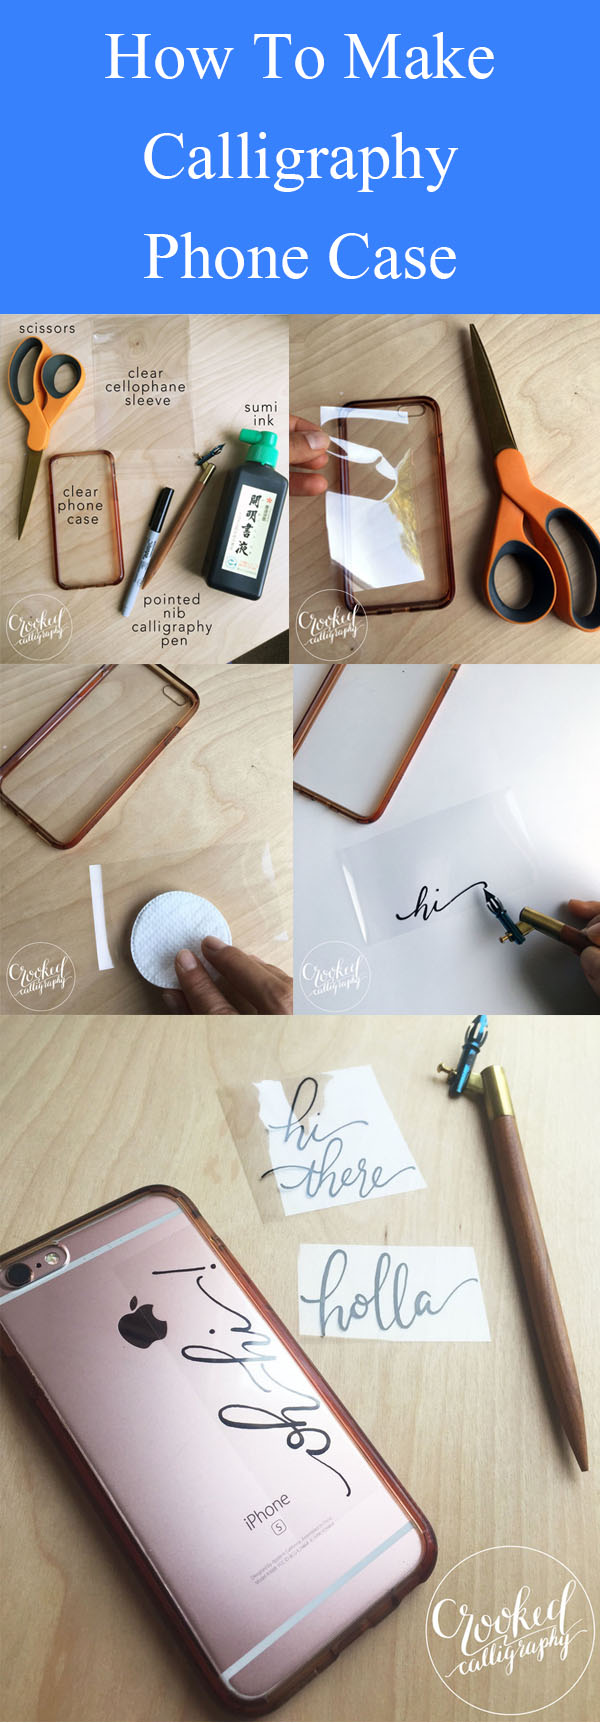 DIY Calligraphy Phone Case